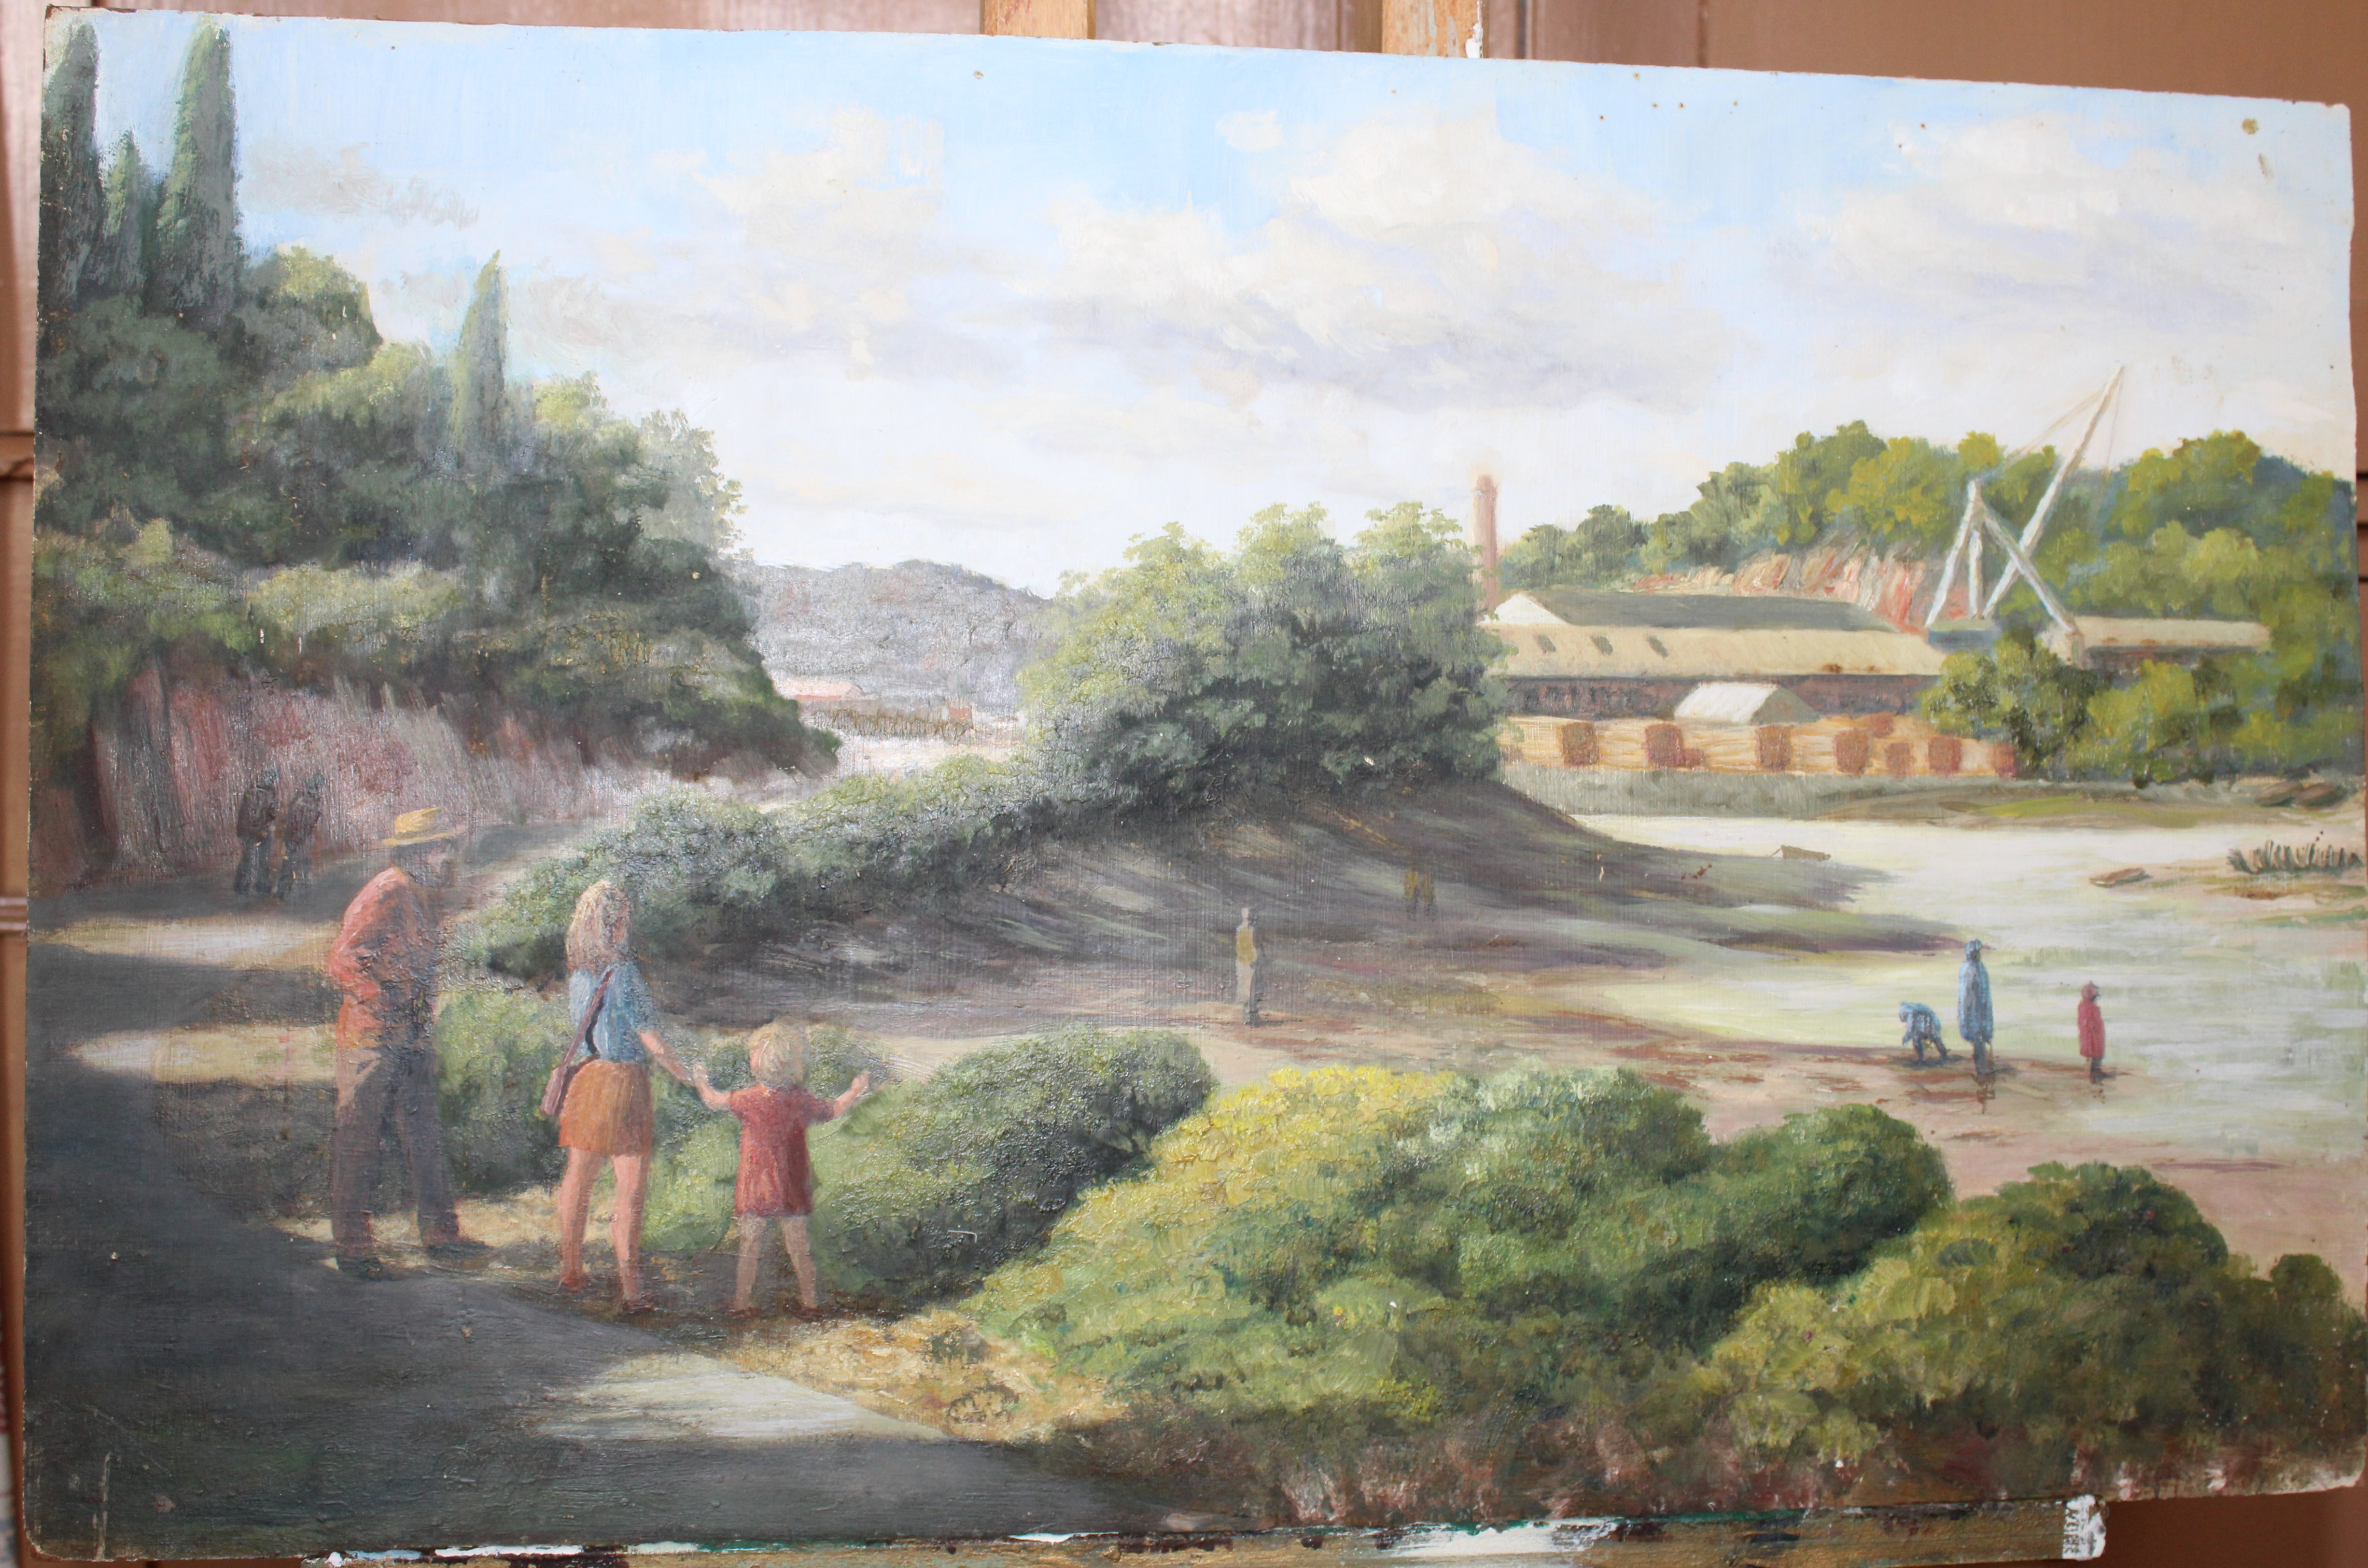 •WILMINSTONE QUARRY Signed unframed oil on board, 45.5 x 61cm, FIGURE WITH BUCKET WALKING ALONG - Image 3 of 4